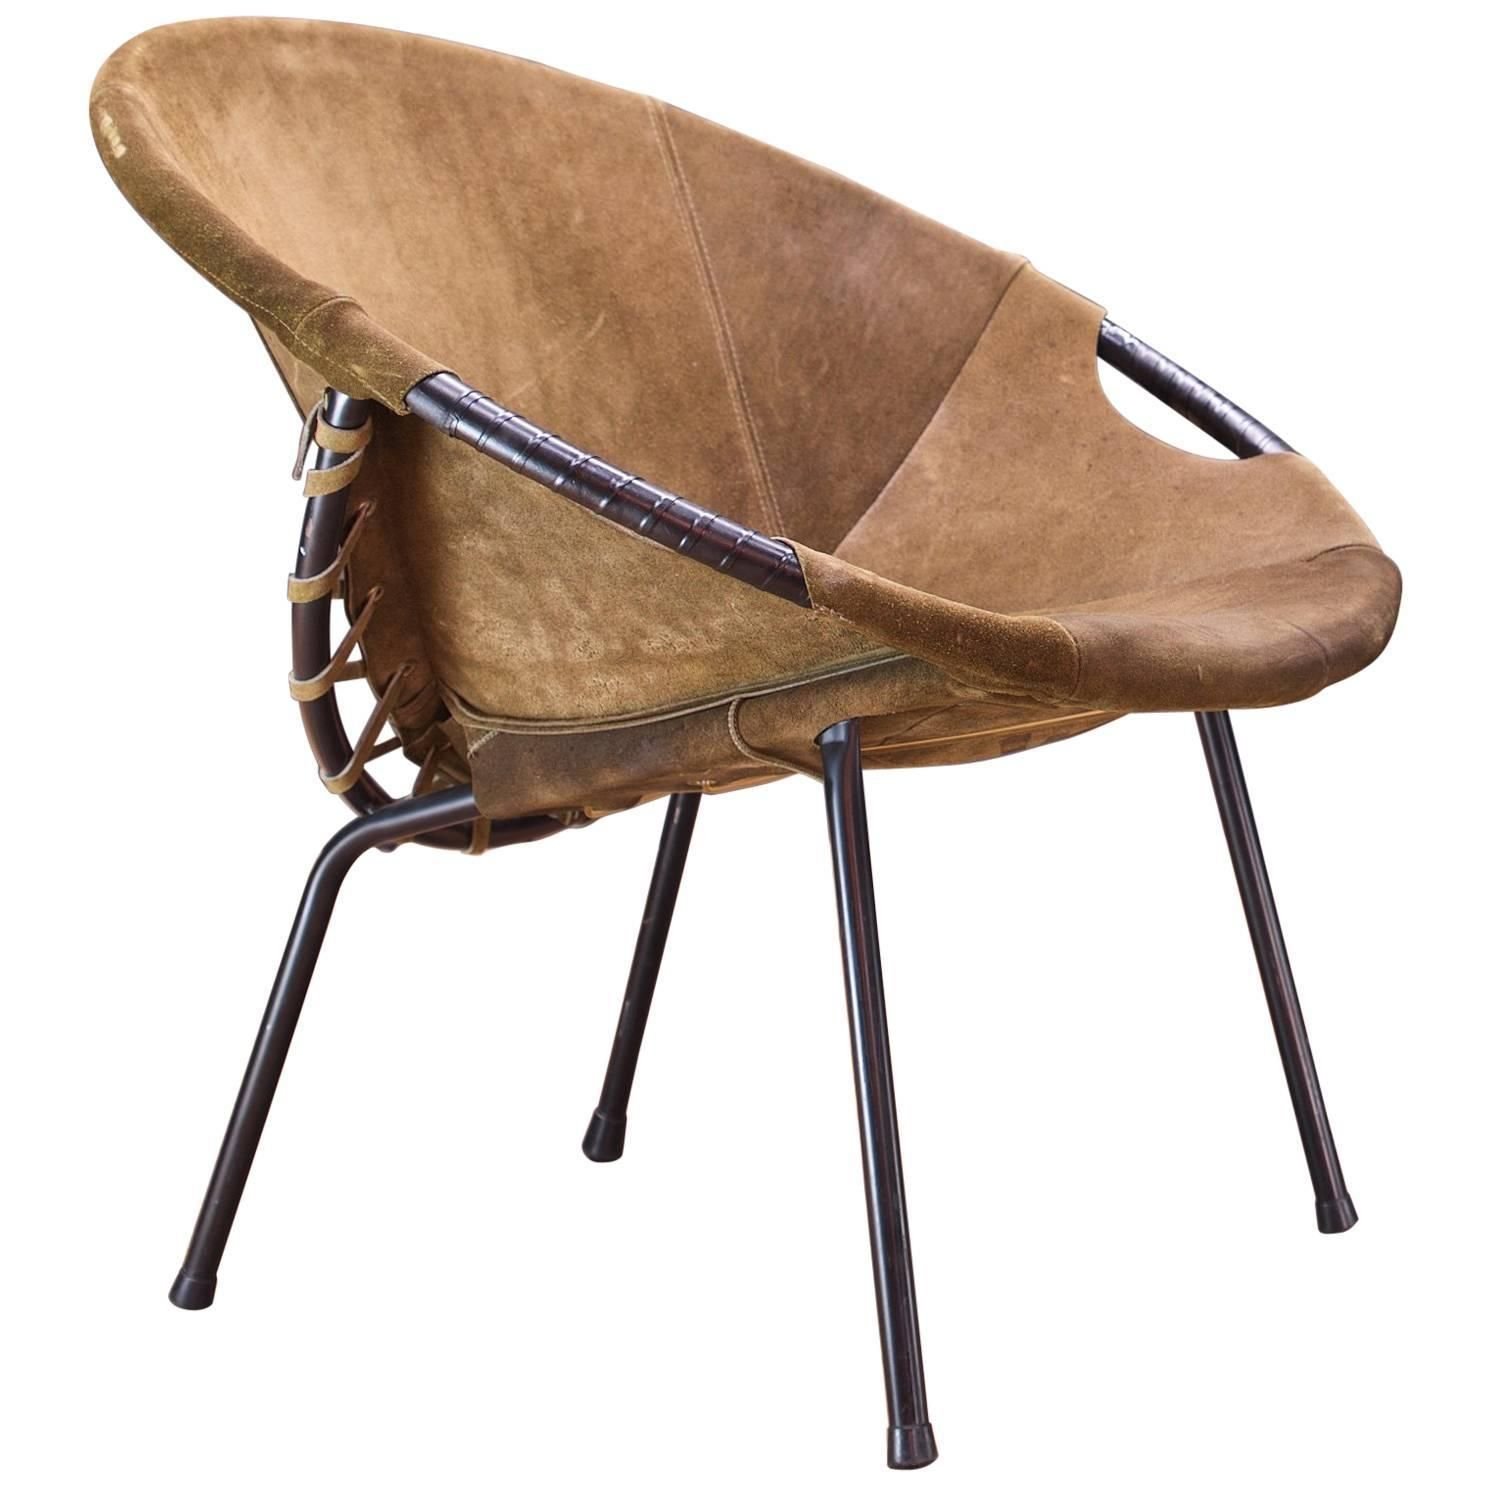 MidCentury Lusch Circle Chair Olive Brown Suede Leather